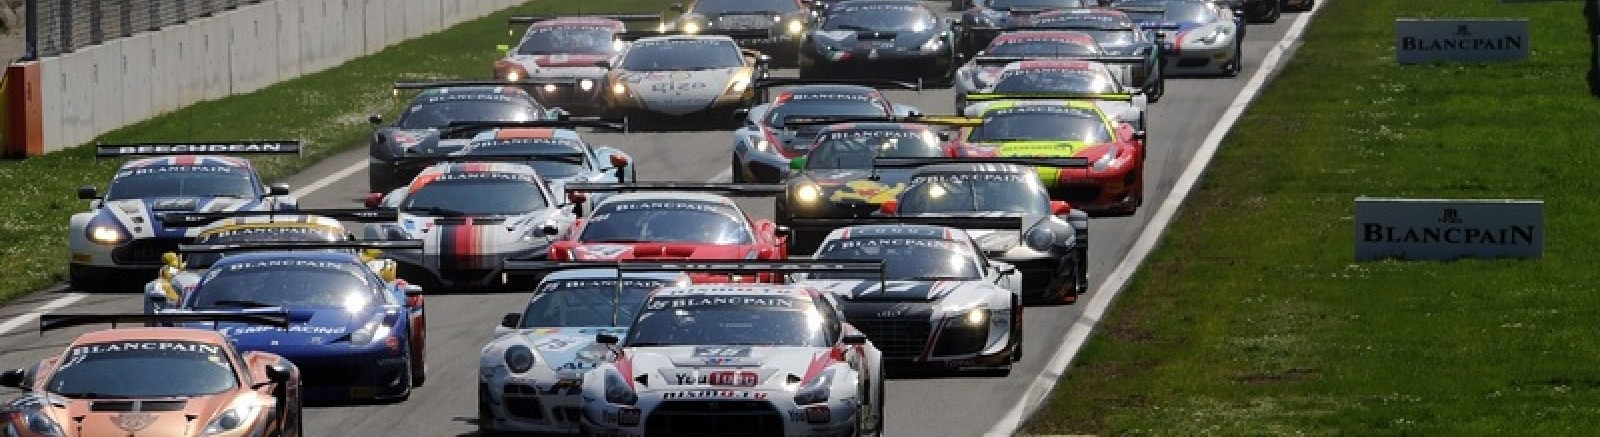 blancpain.international series.jpg